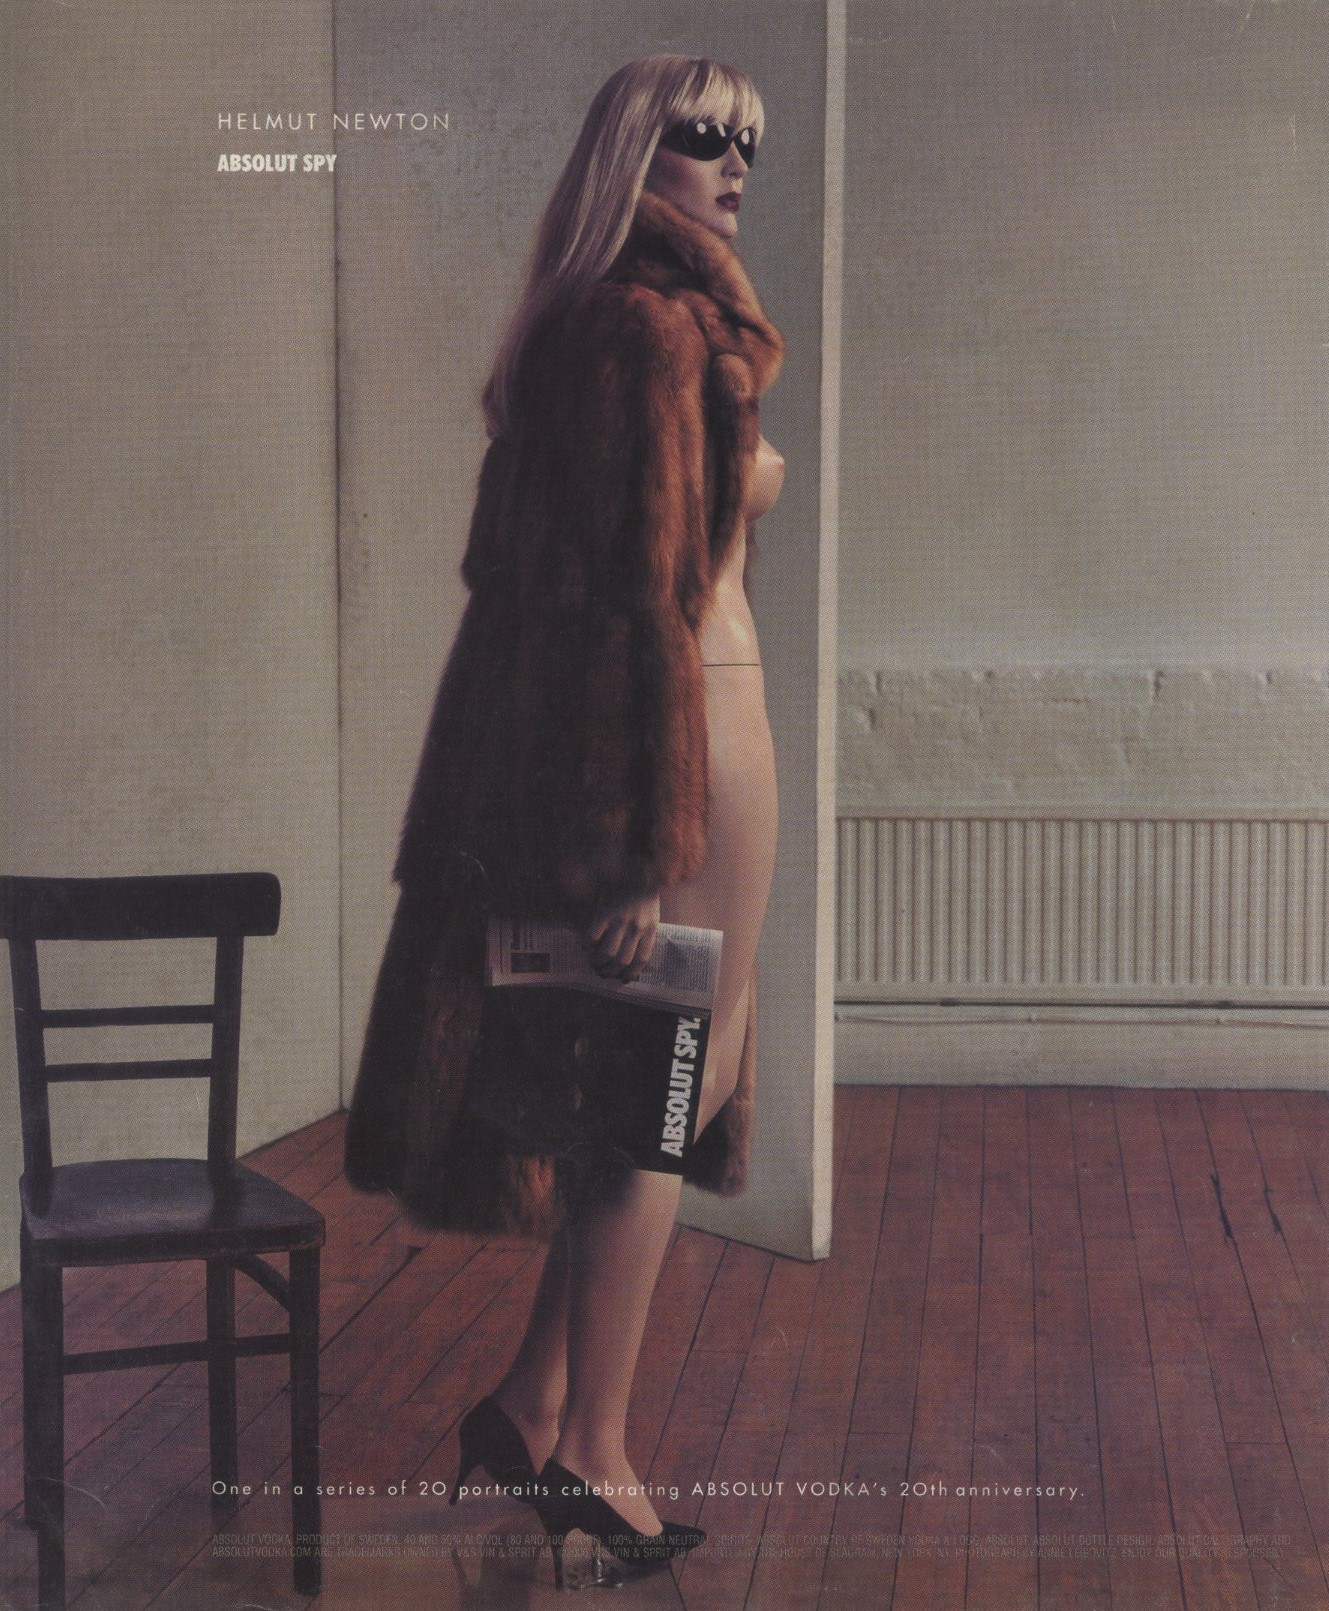 ABSOLUT SPY | ABSOLUT VODKA'S 20TH ANNIVERSARY | PHOTOGRAPHY HELMUT NEWTON | AMERICAN PHOTO | SEPTEMBER/OCTOBER 2000